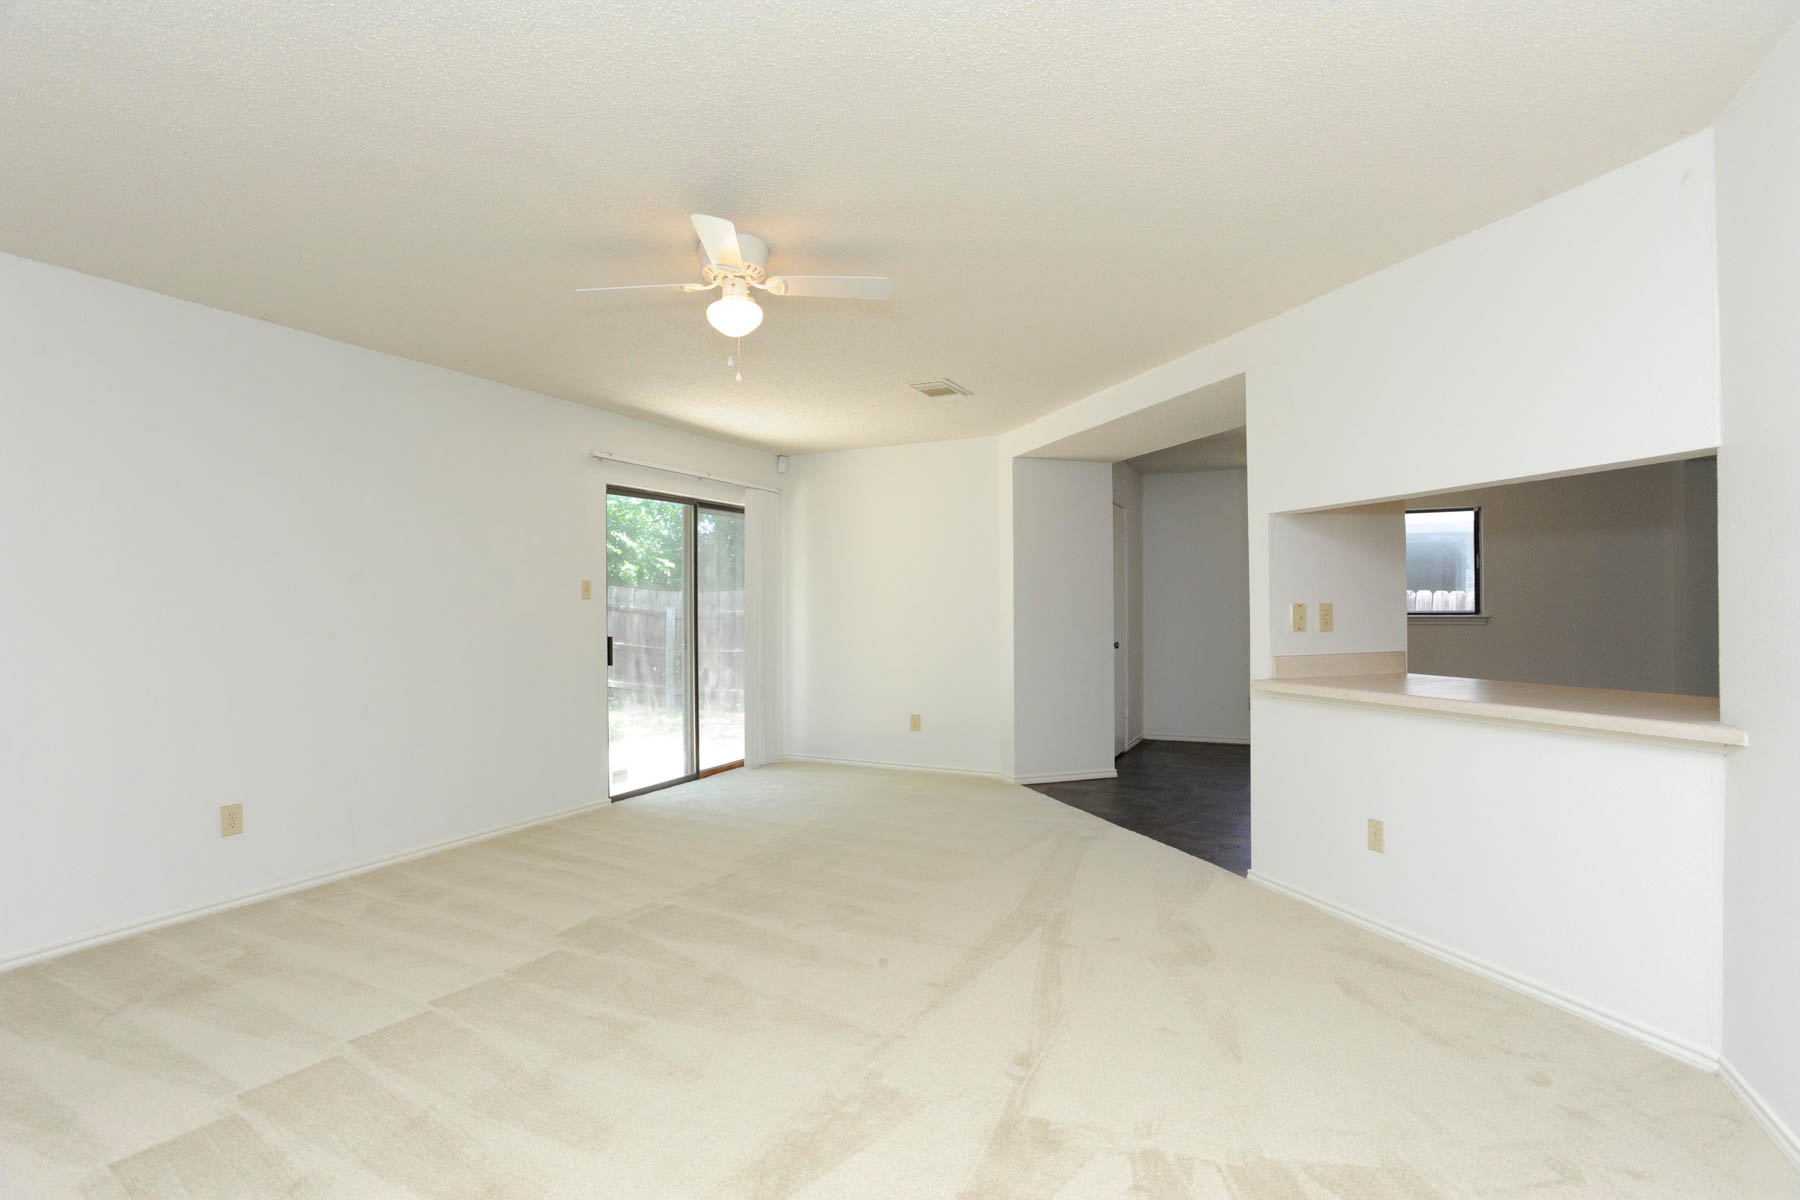 Additional photo for property listing at Spacious and Move-In Ready Home in Woodlake Park 5419 Park Lake San Antonio, Texas 78244 Estados Unidos